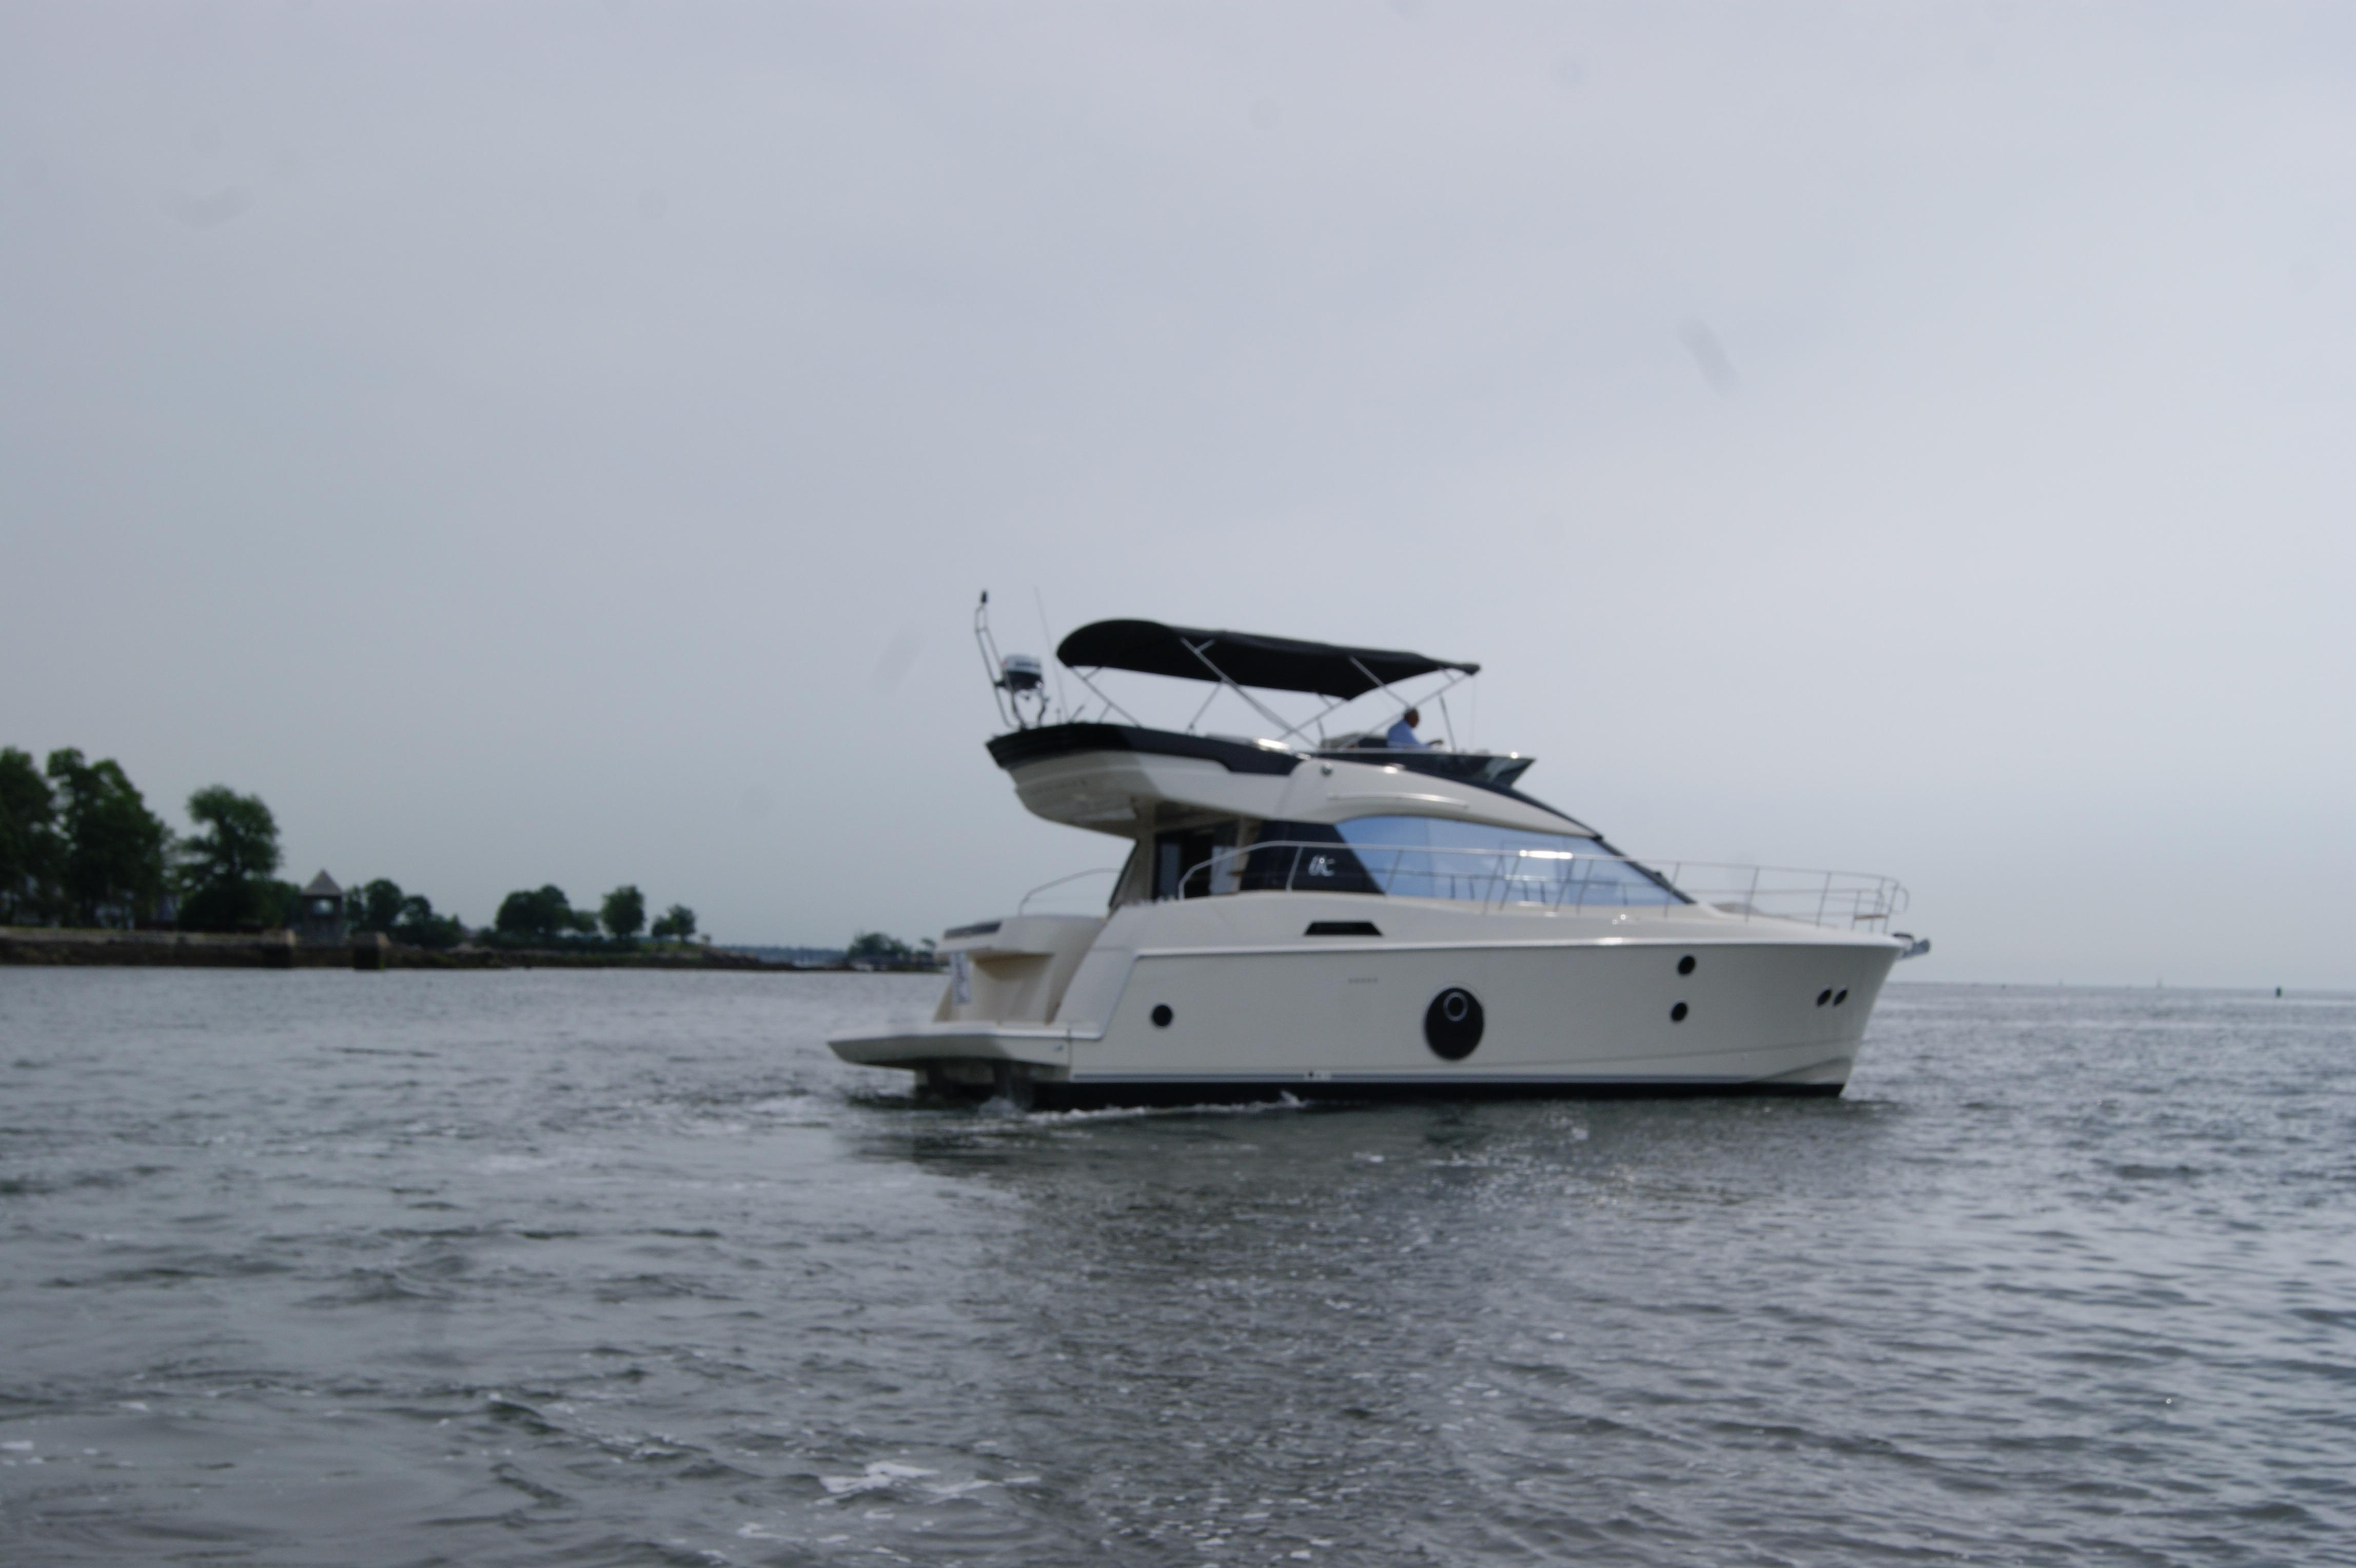 2018 Beneteau Monte Carlo Mc5 Yacht for Sale in NY